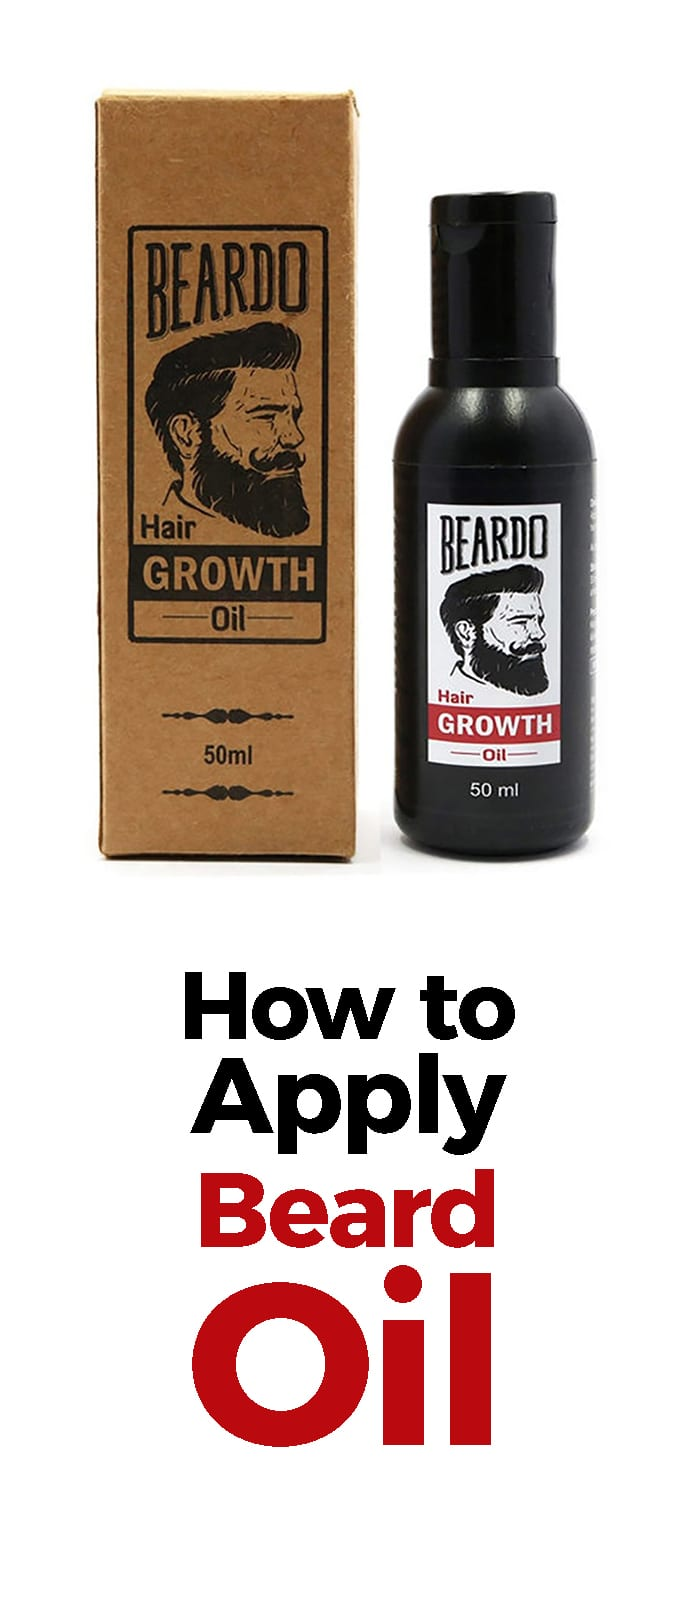 How To Apply Beard Oil!